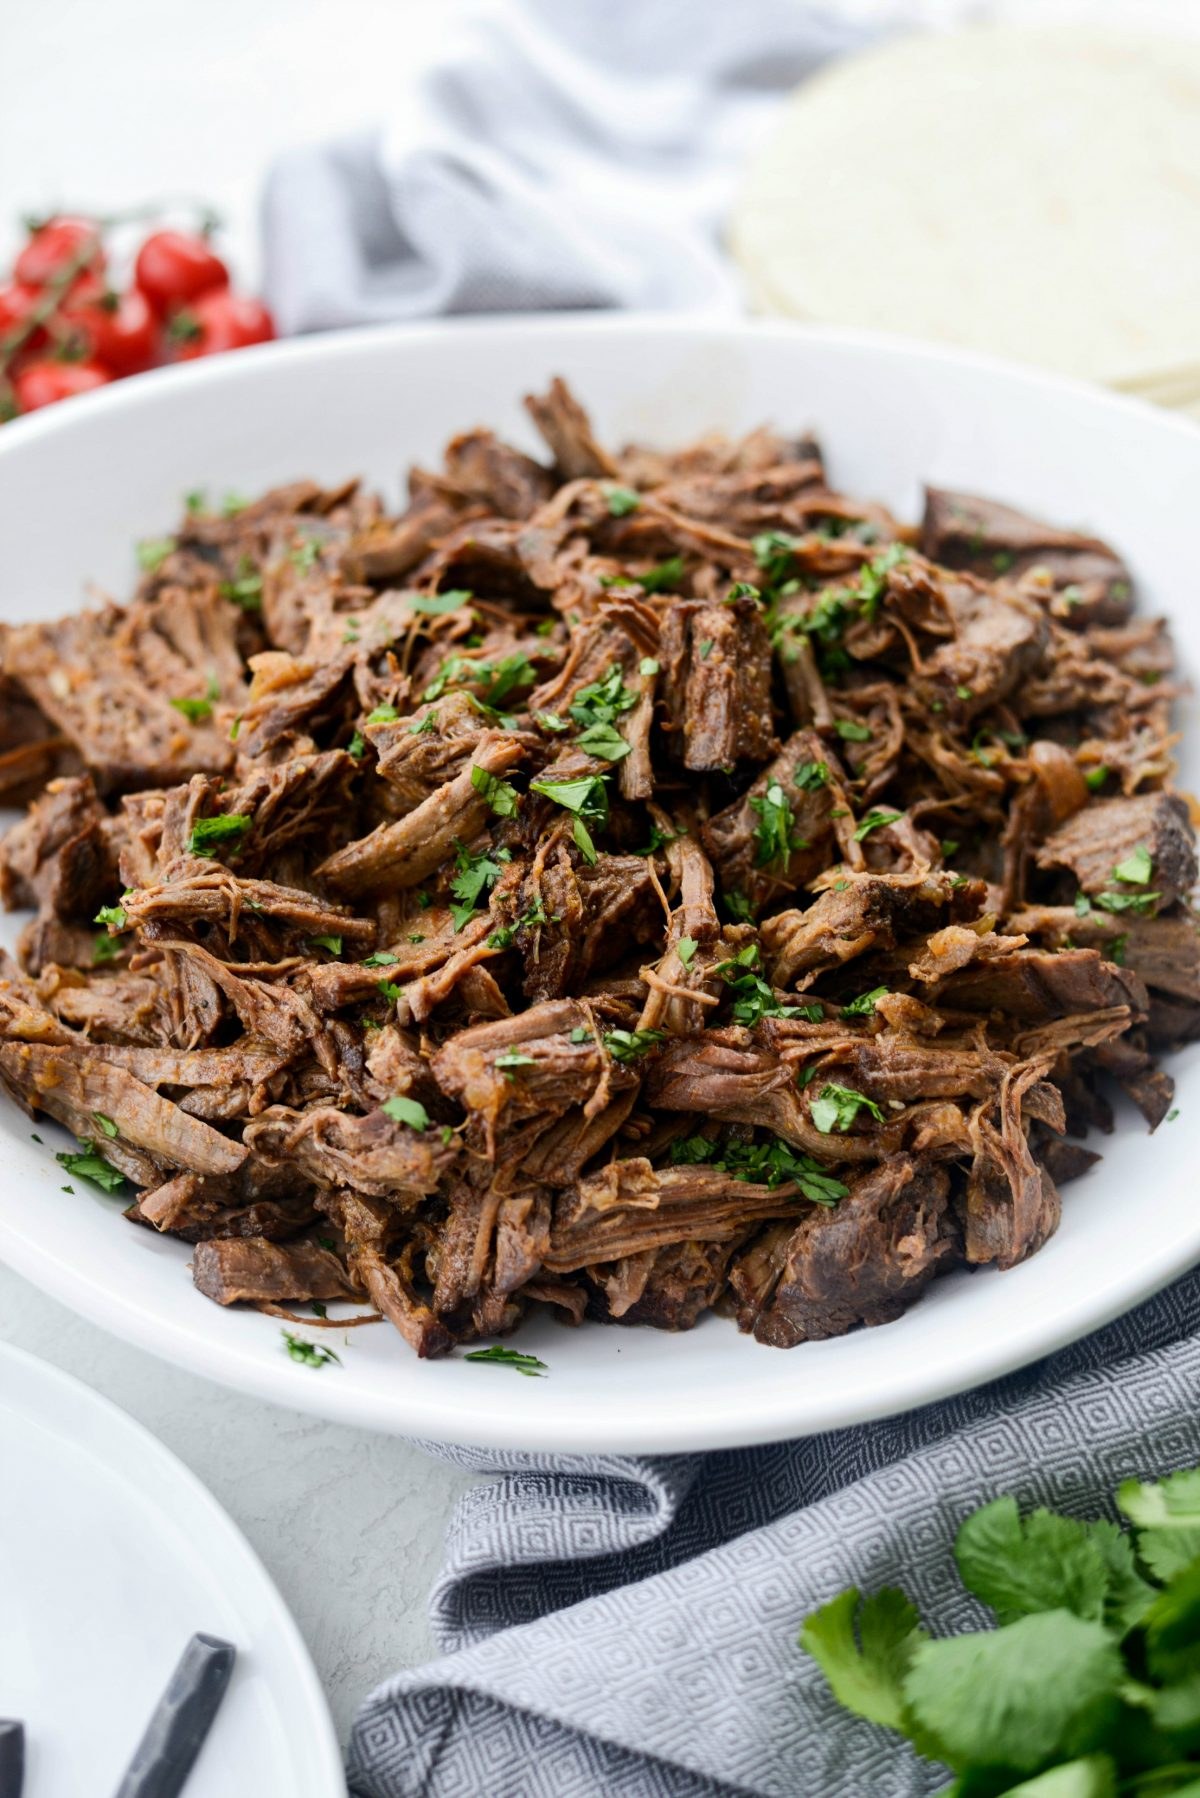 Slow Cooker Beef Barbacoa l SimplyScratch.com #beef #barbacoa #texmex #slowcooker #recipe #easy #shreddedbeef